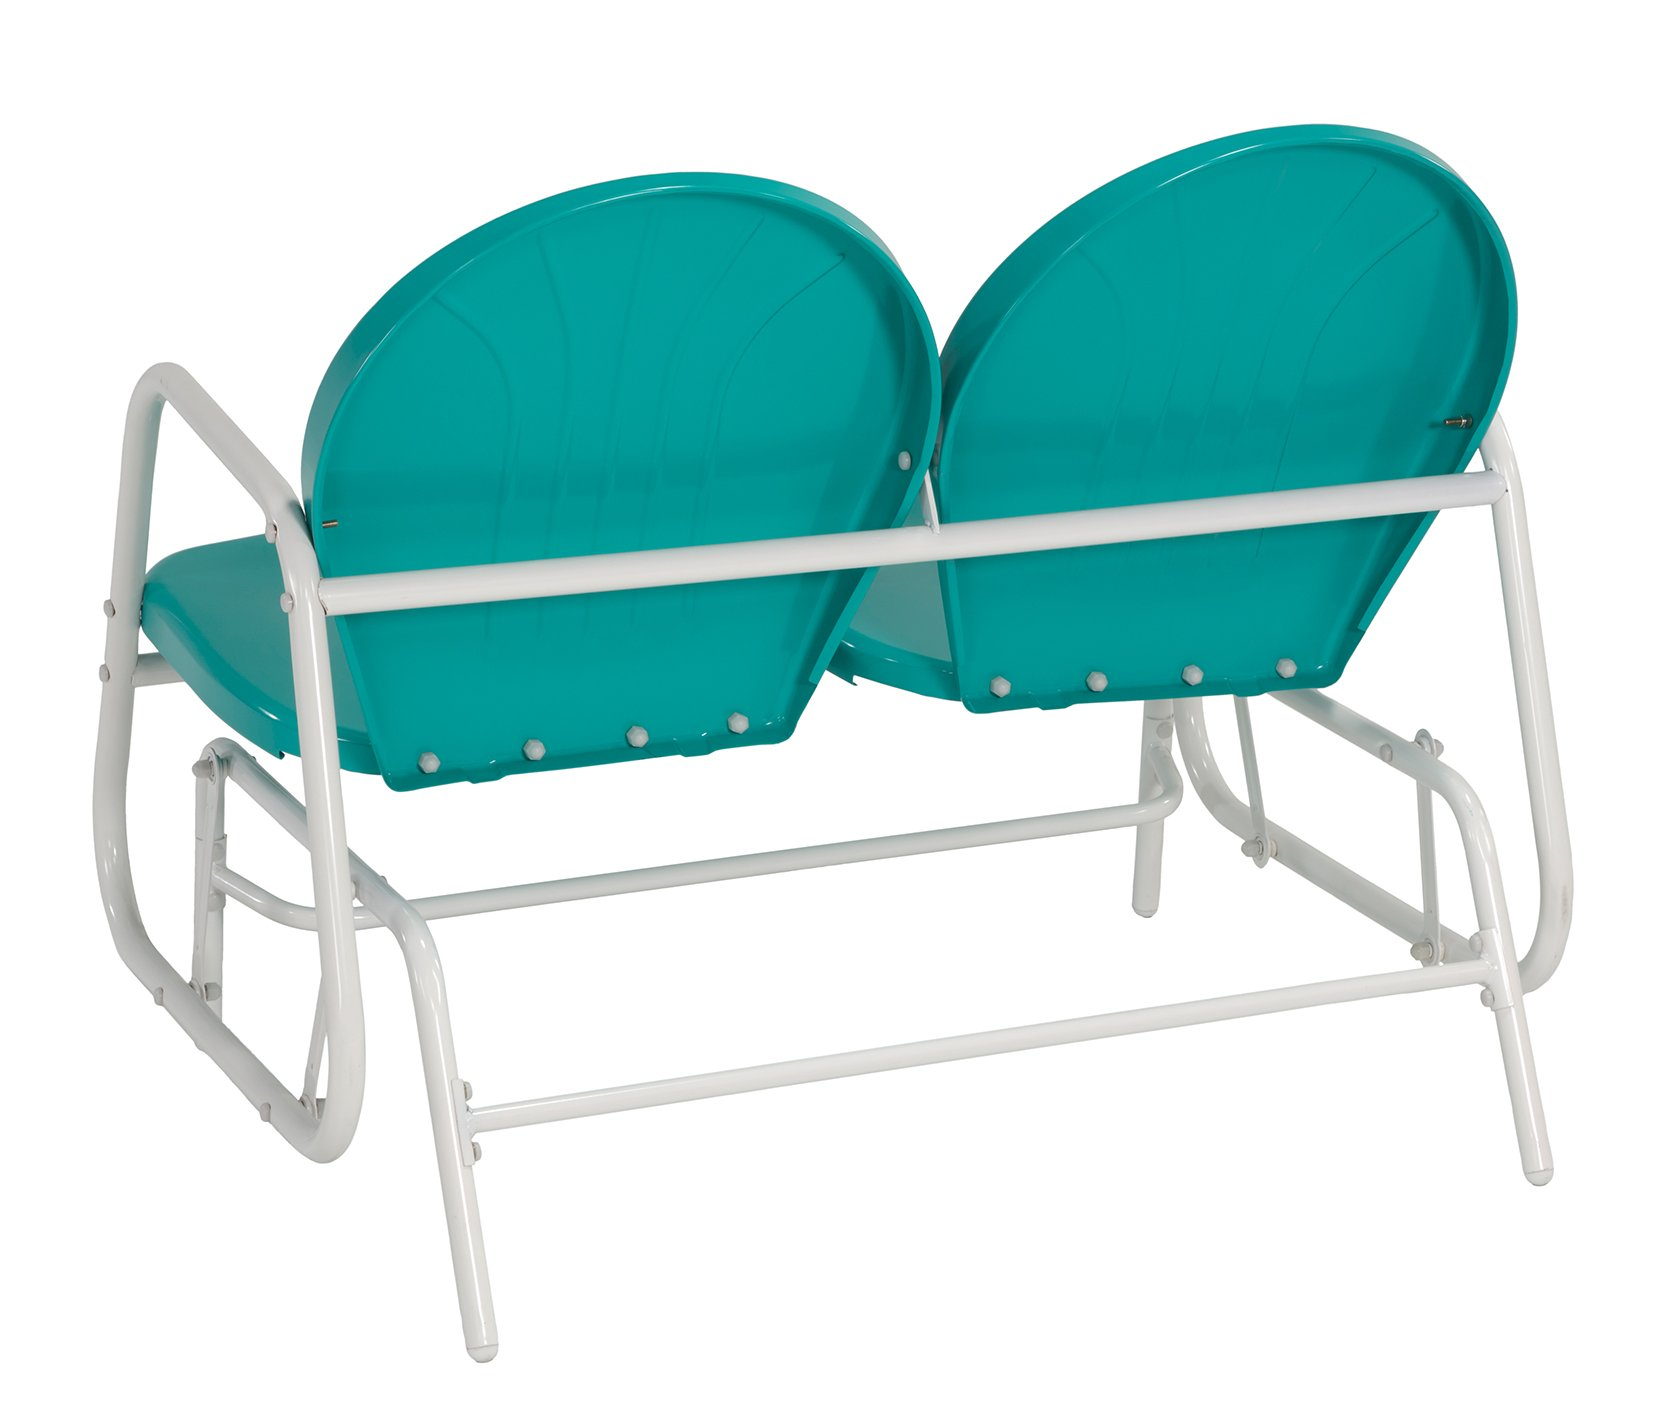 Jack Post BH-10EM Porch Glider,Turquoise by Jack Post (Image #2)